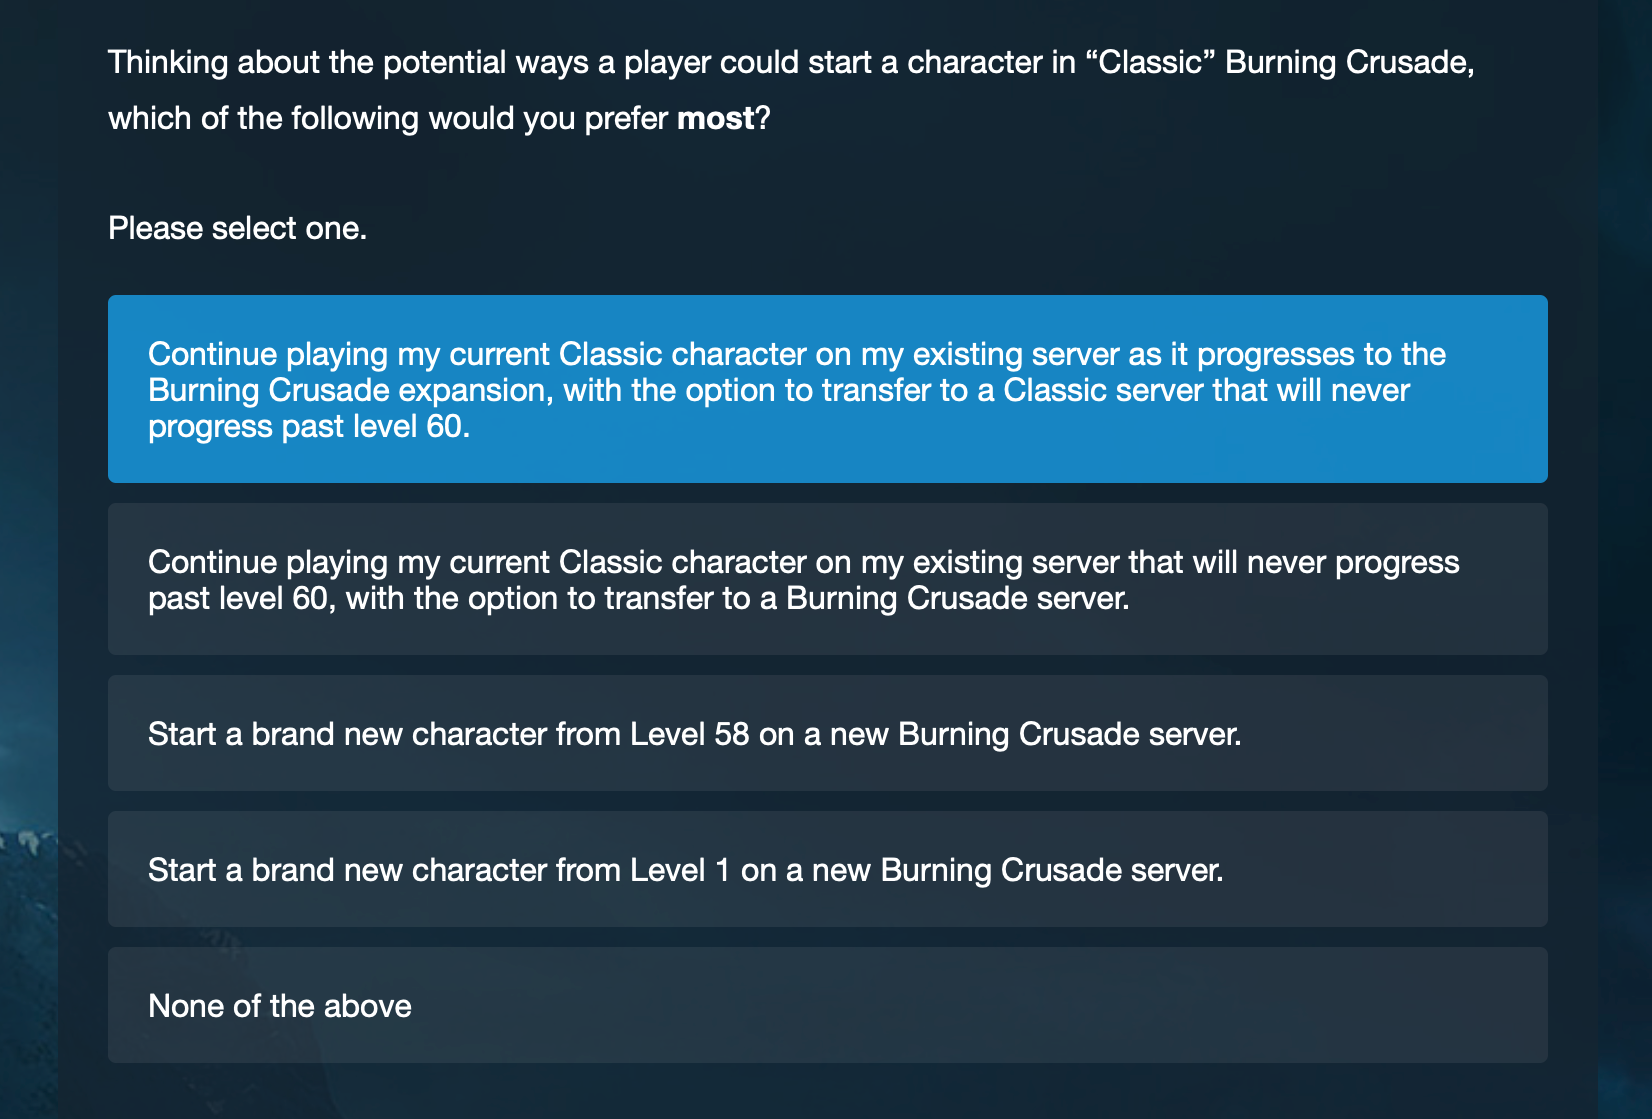 A survey sent out by Blizzard has tipped off WoW players that The Burning Crusade re-release is on the horizon.